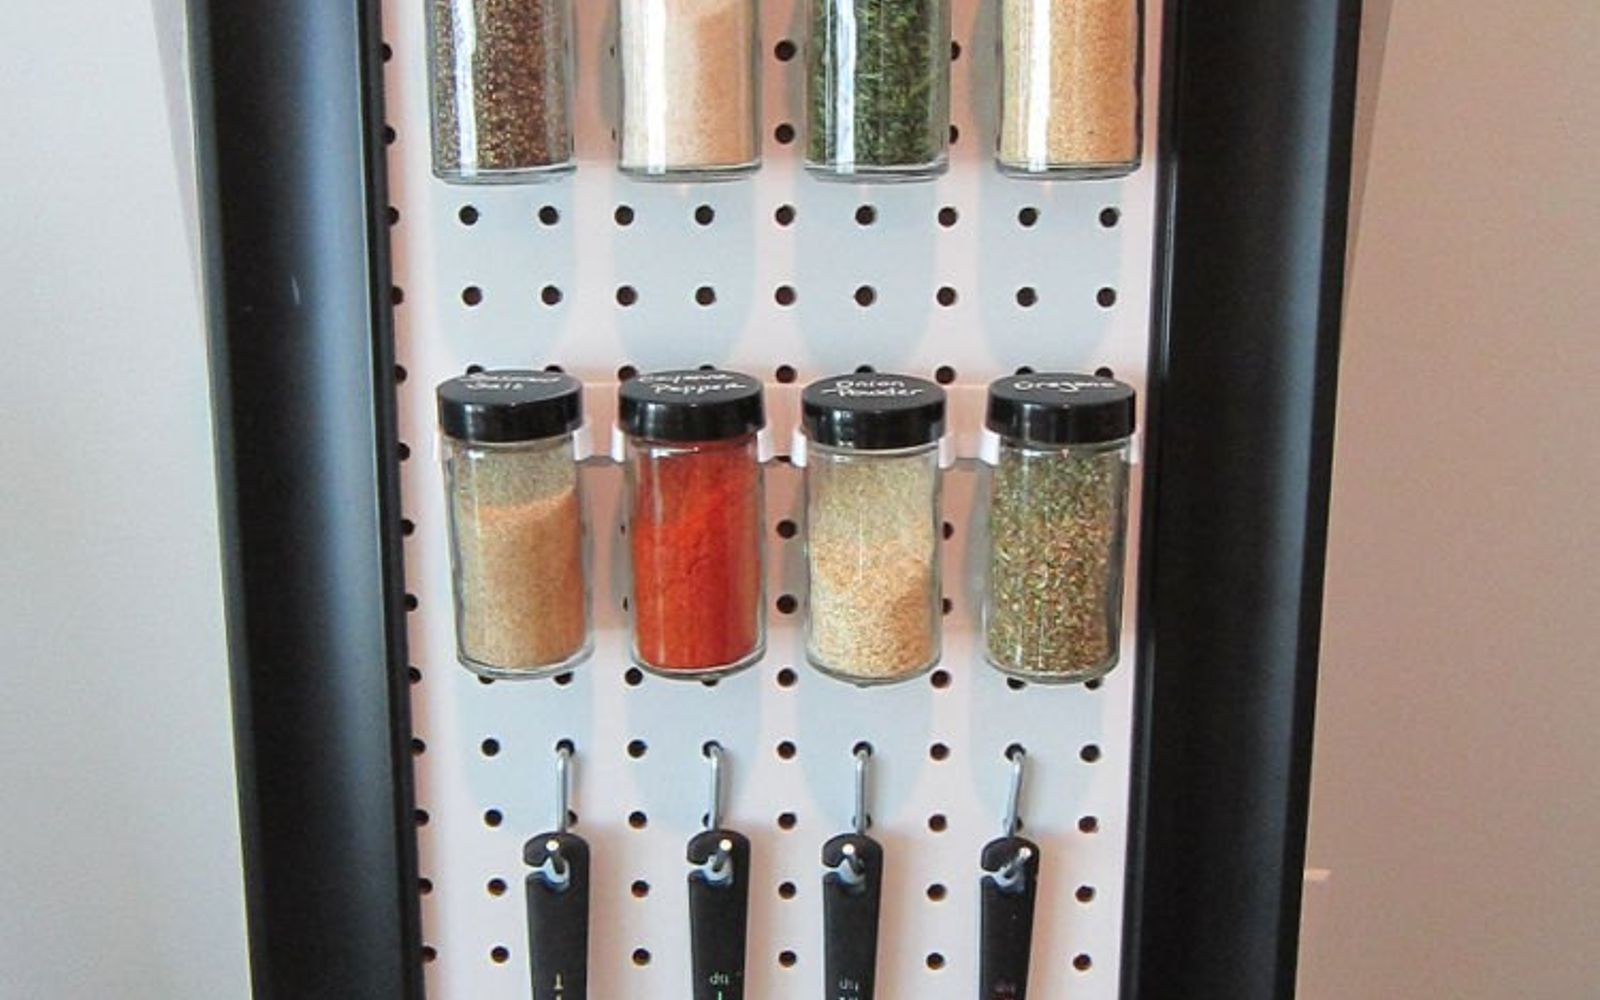 s 15 ways to organize every messy nook with pegboard, organizing, woodworking projects, Make an easy spice rack for a kitchen wall